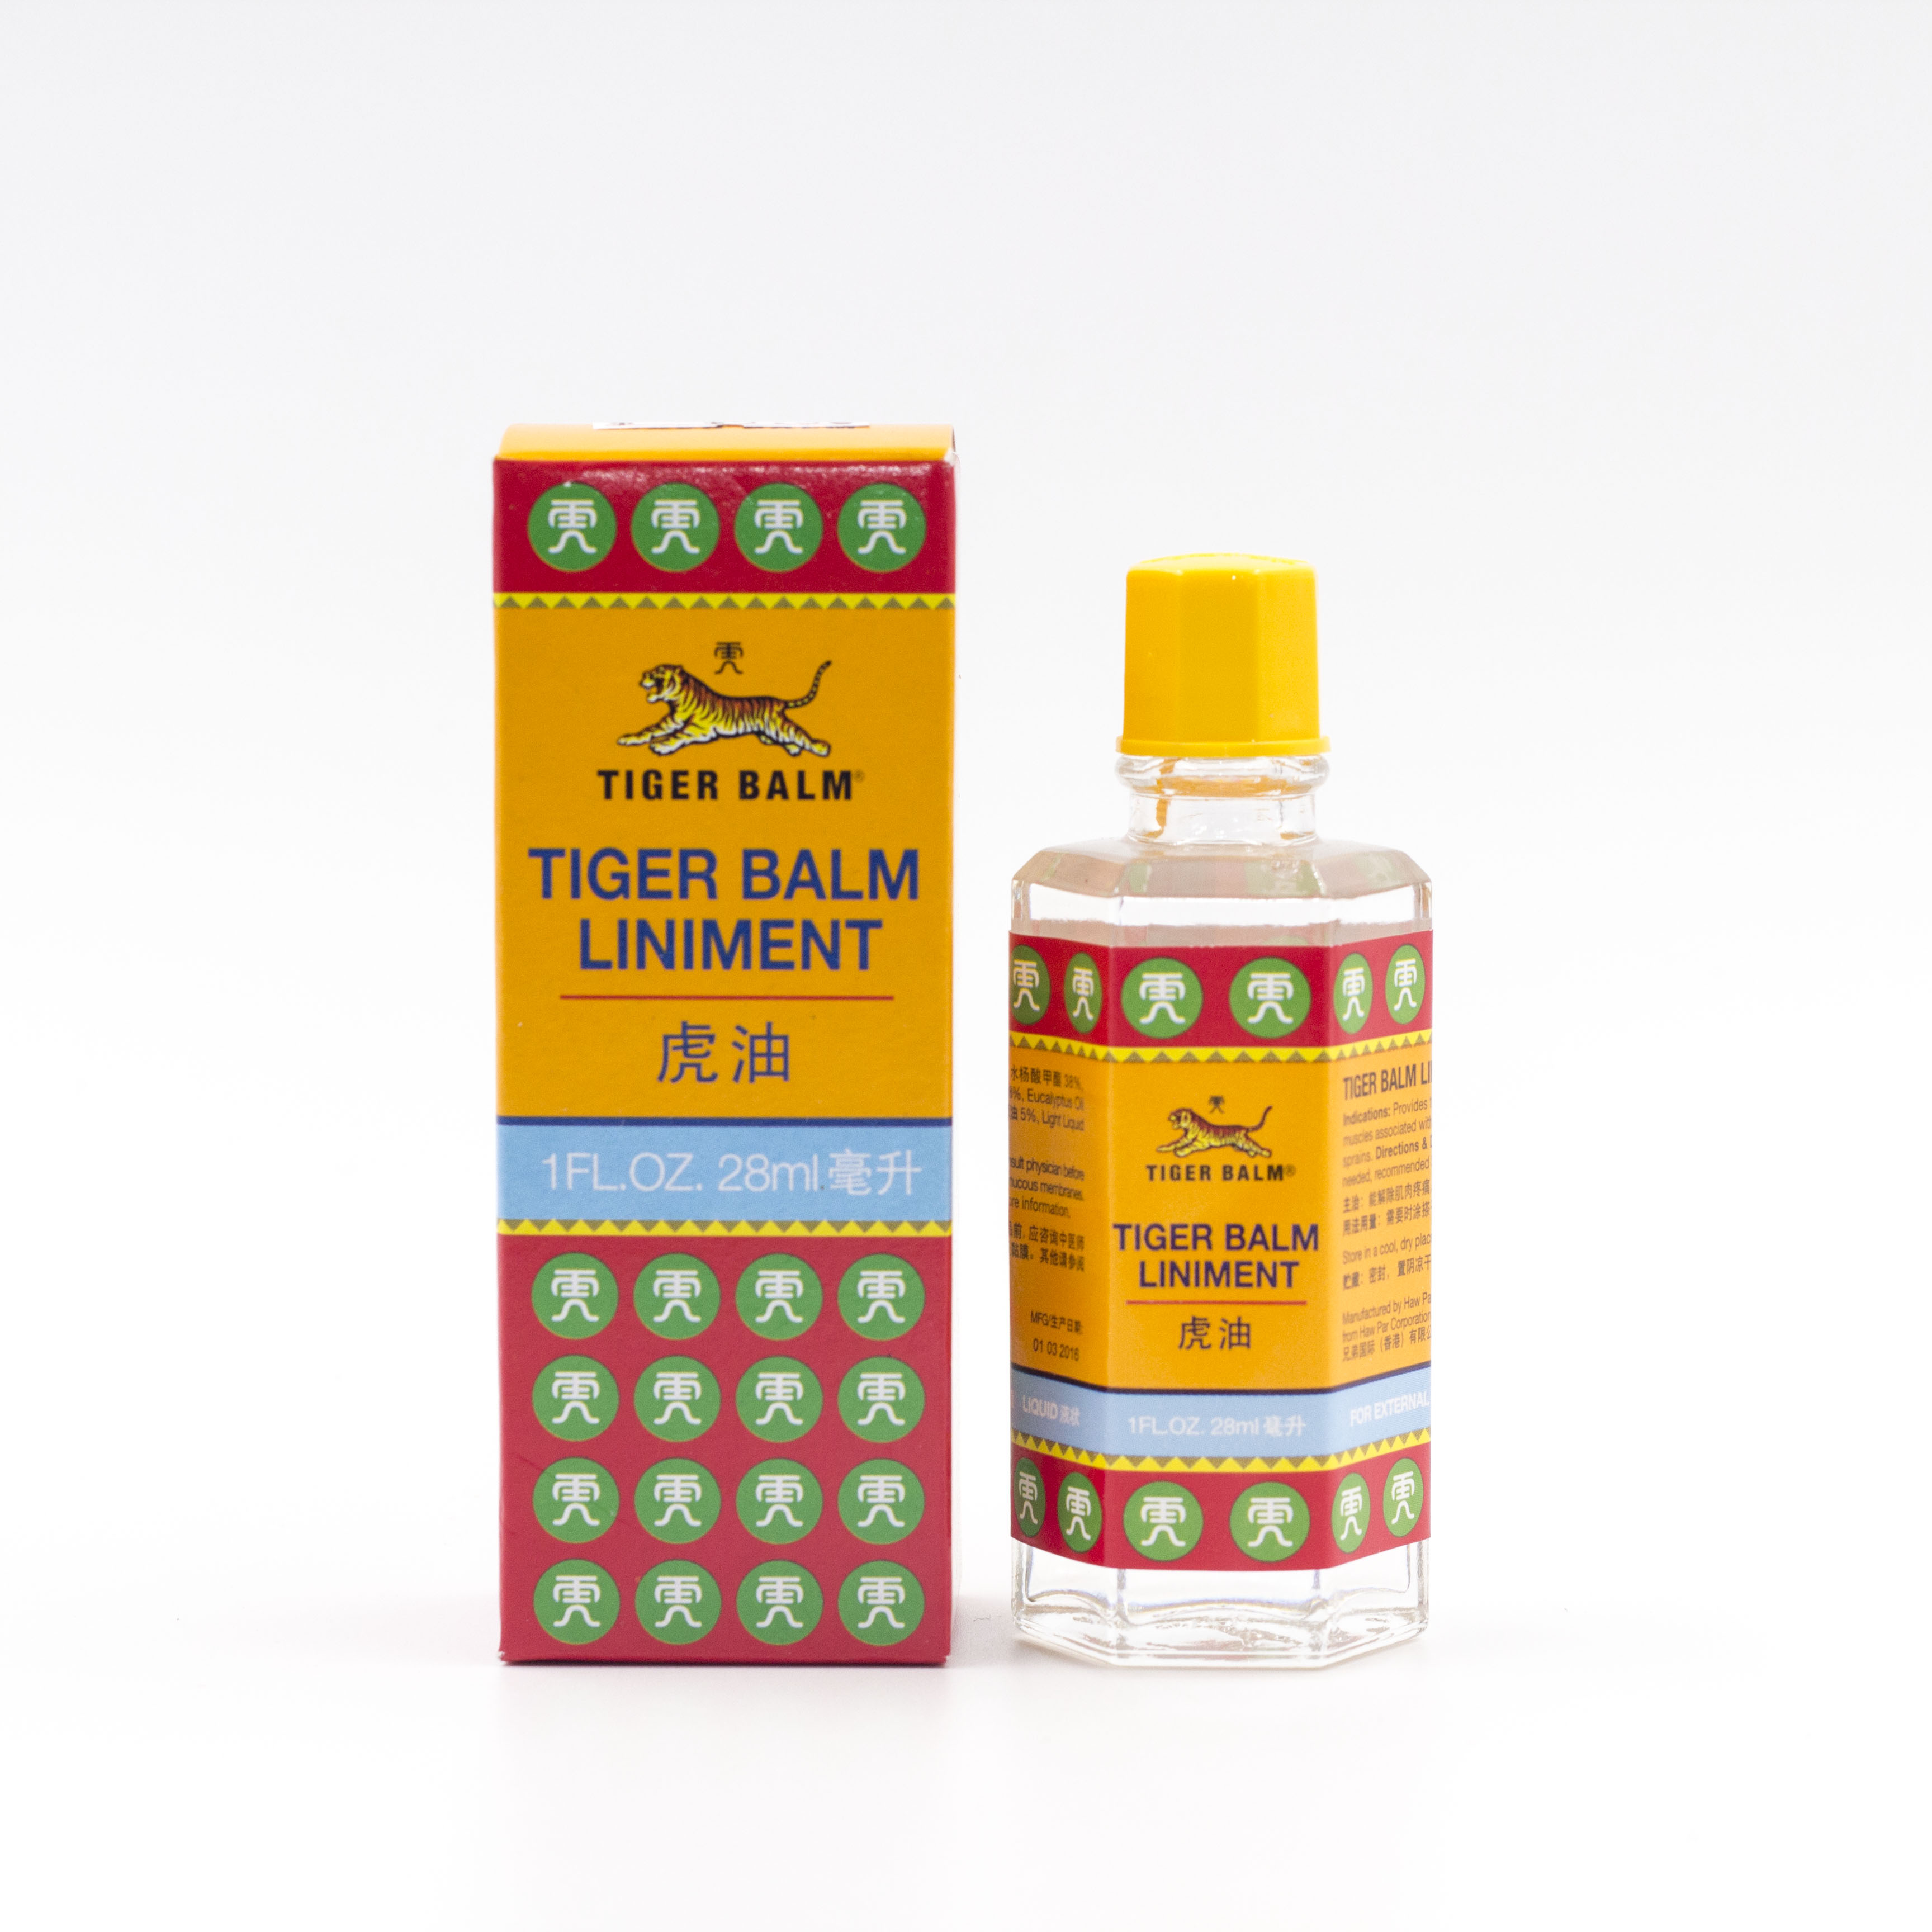 Tiger Balm Liniment Dabao Online Store